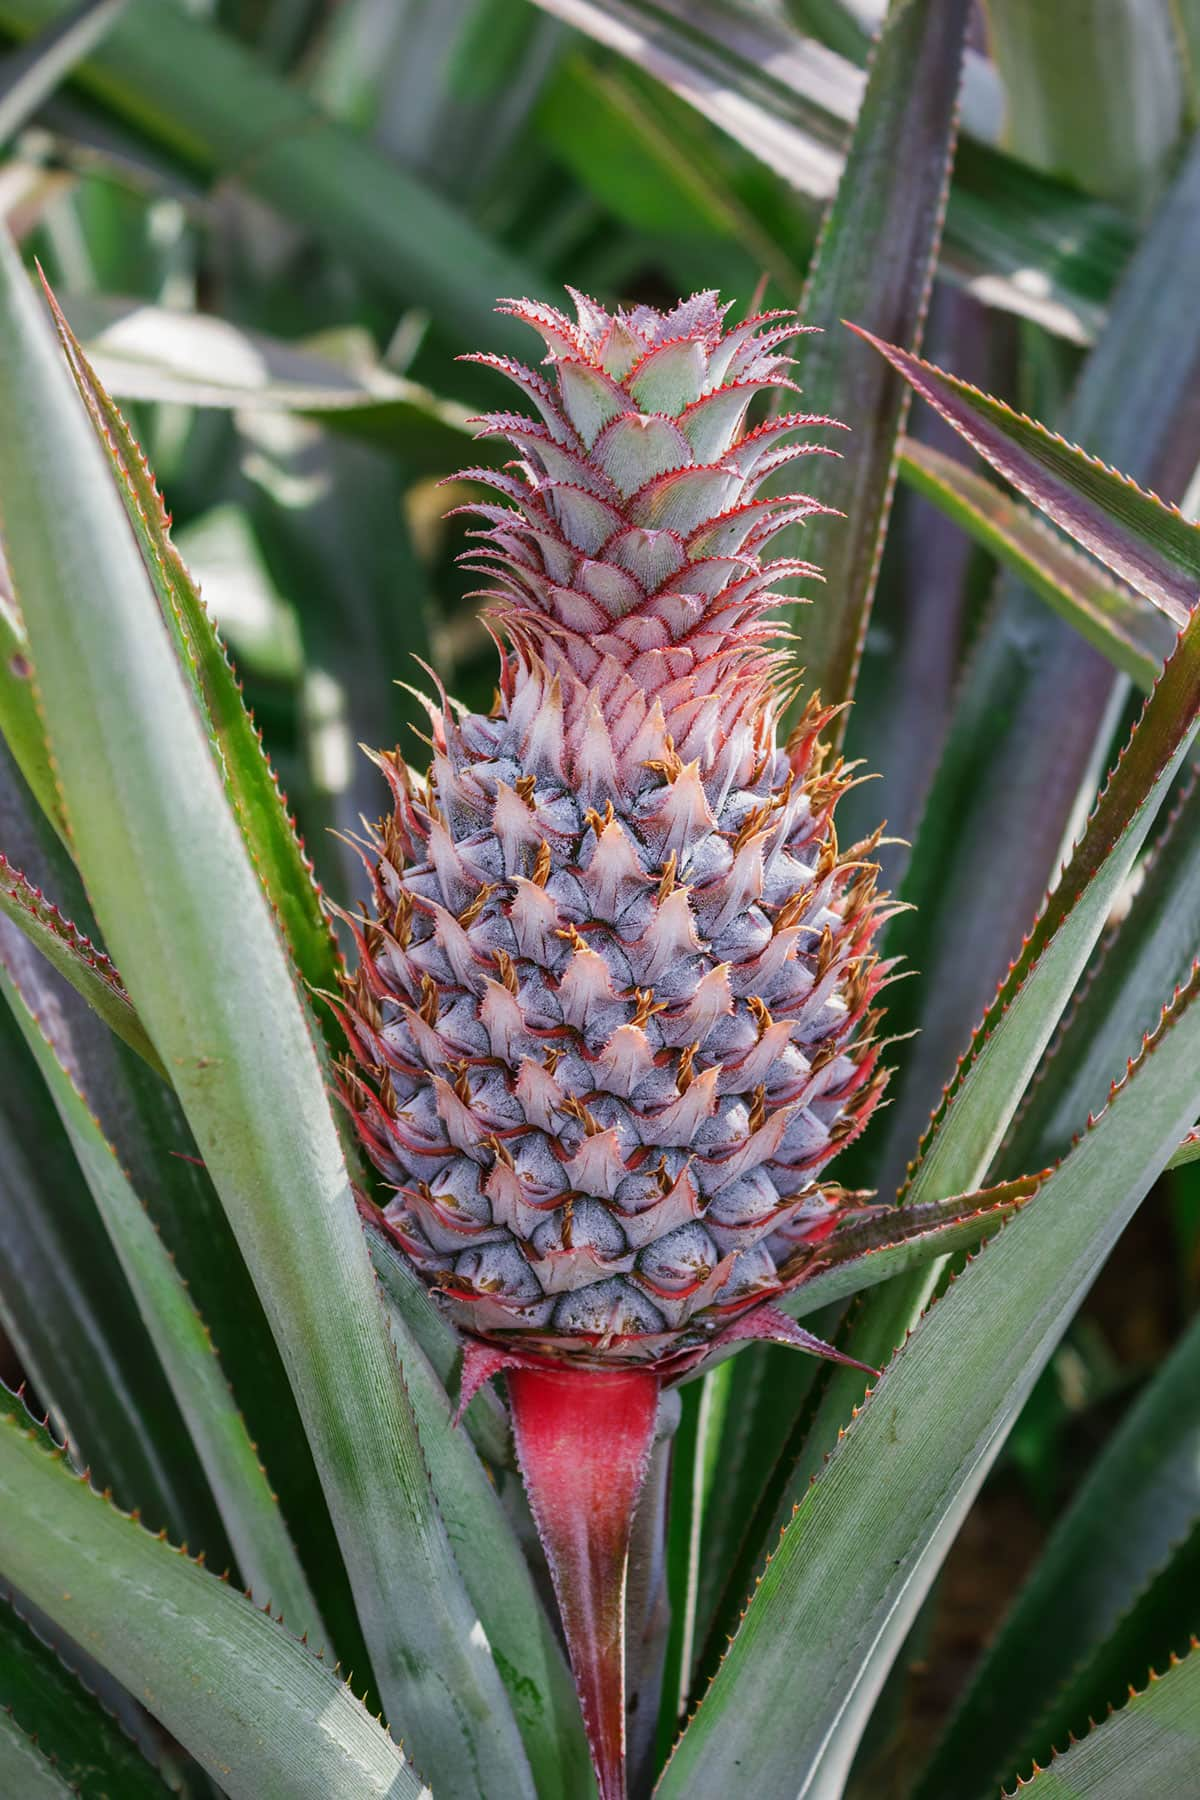 Pineapple plant growing with a pineapple